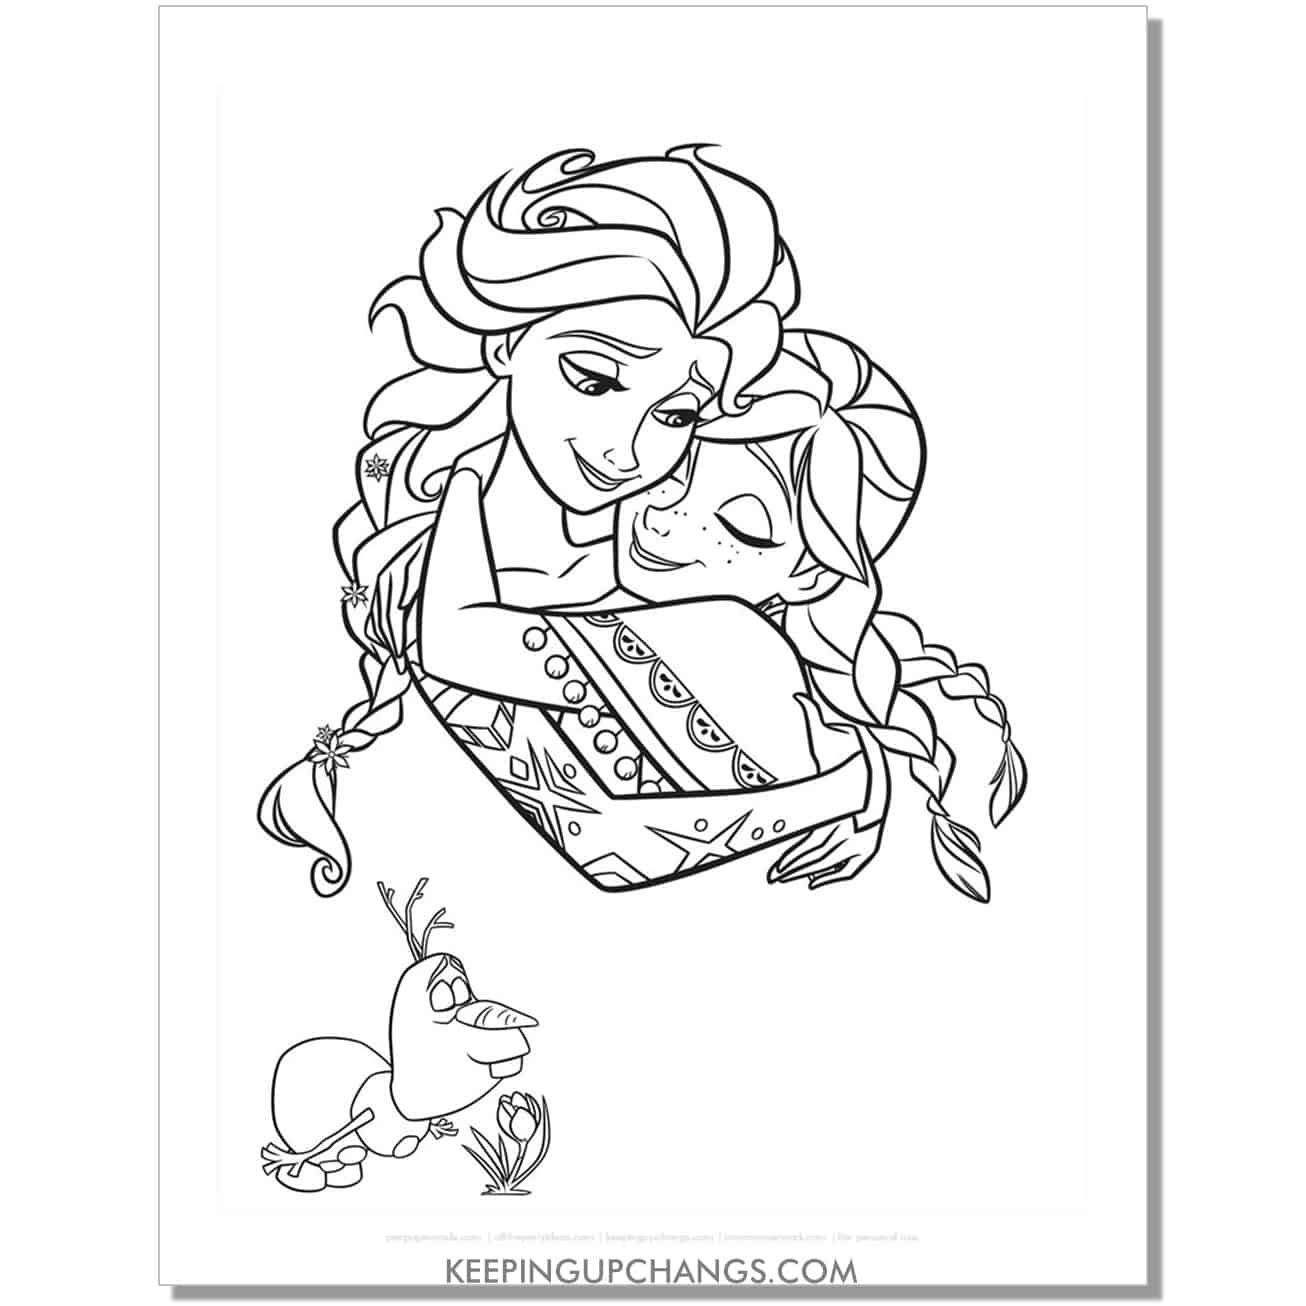 free frozen elsa and anna hugging coloring page.